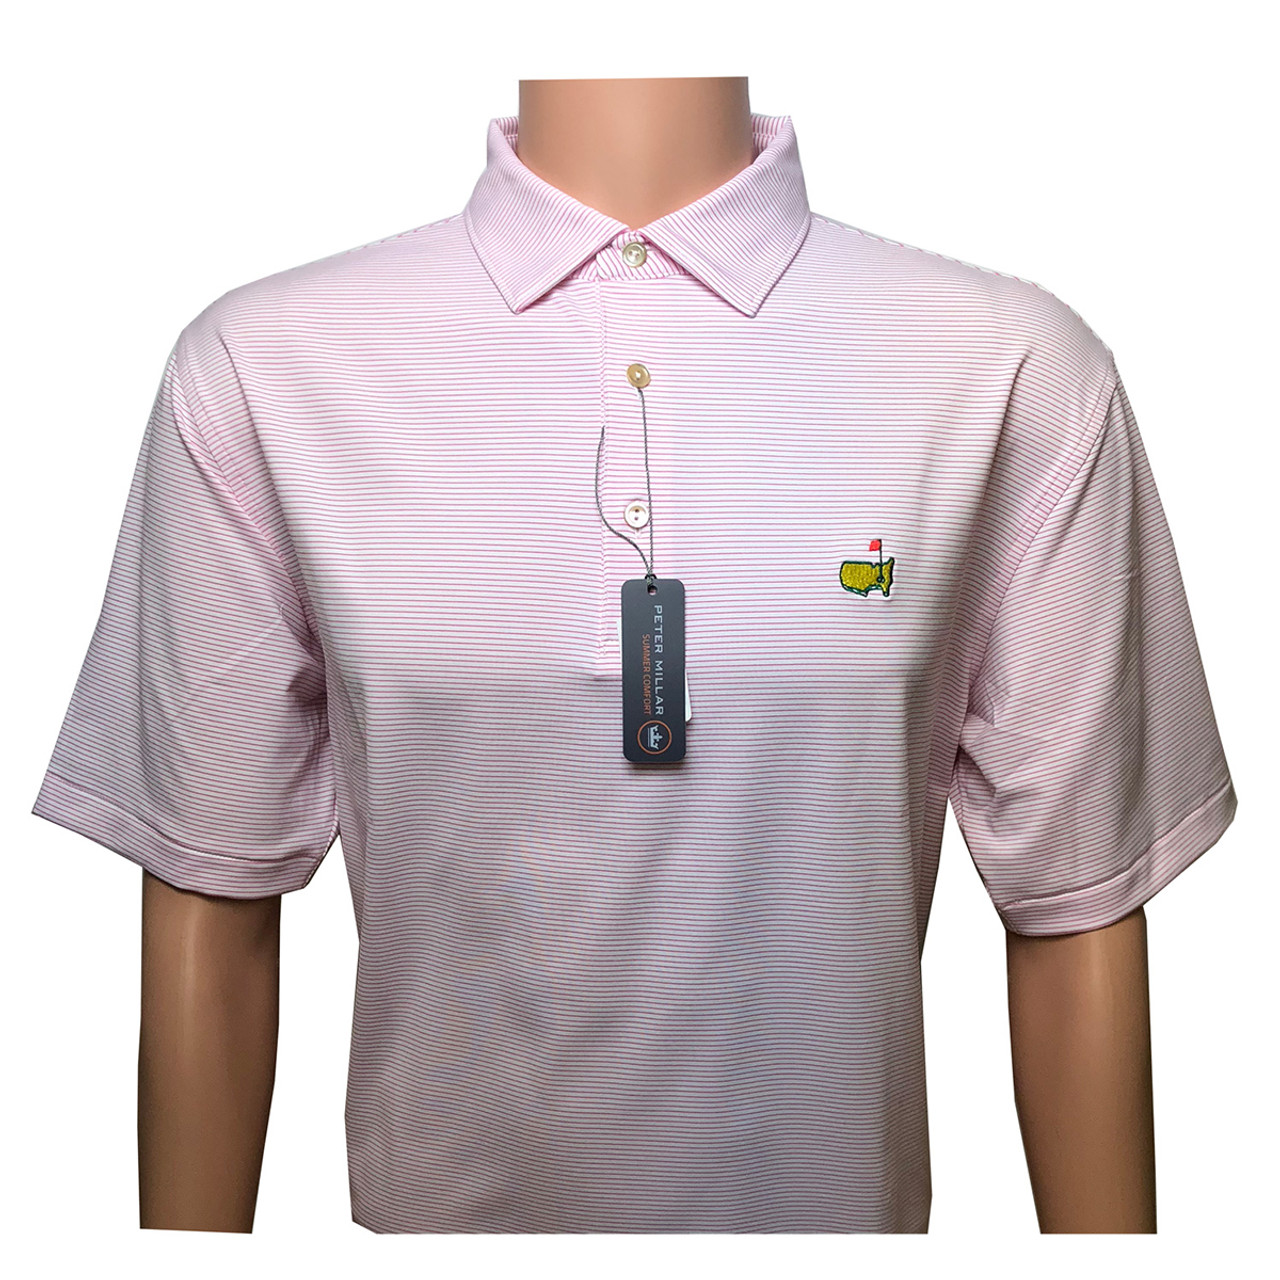 fbd9f37c Masters Peter Millar White and Pink Striped Tech Golf Shirt